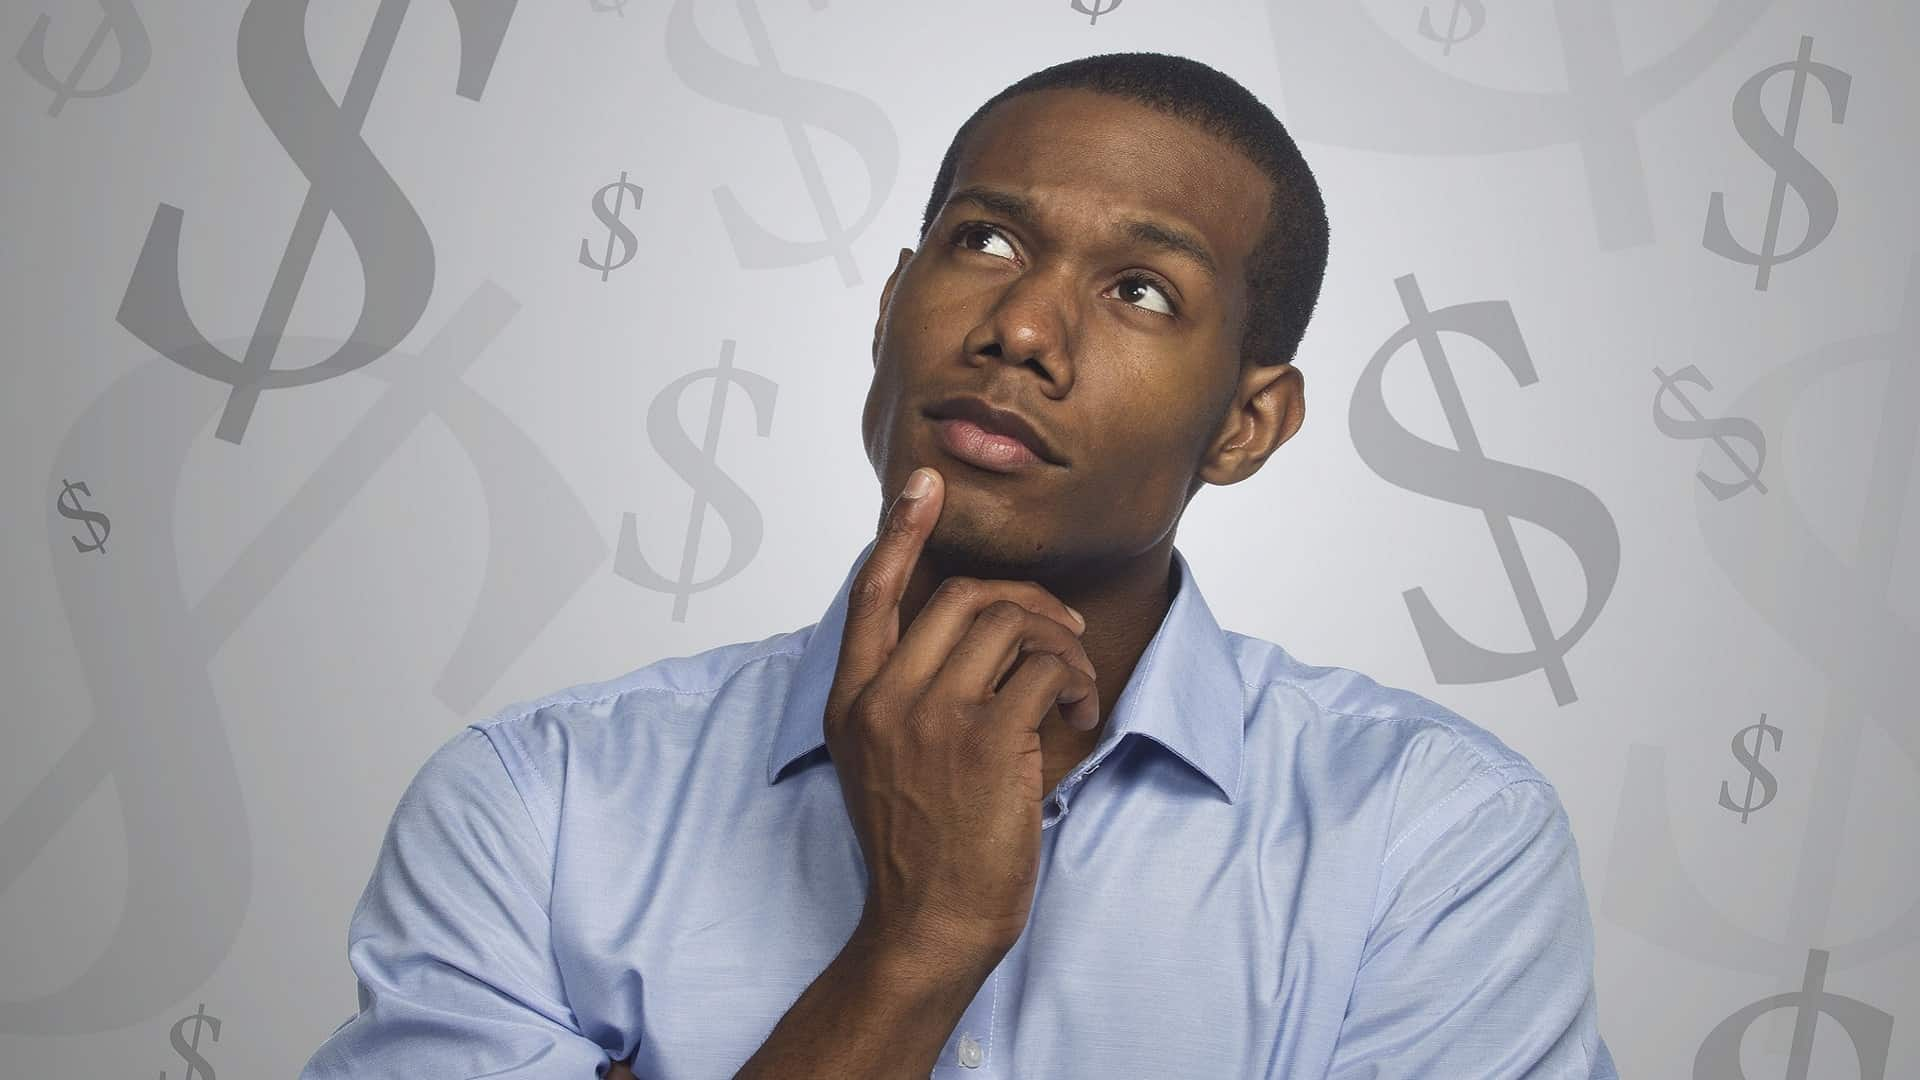 man thinking that online arbitration is cheaper with a backround of dollar signs